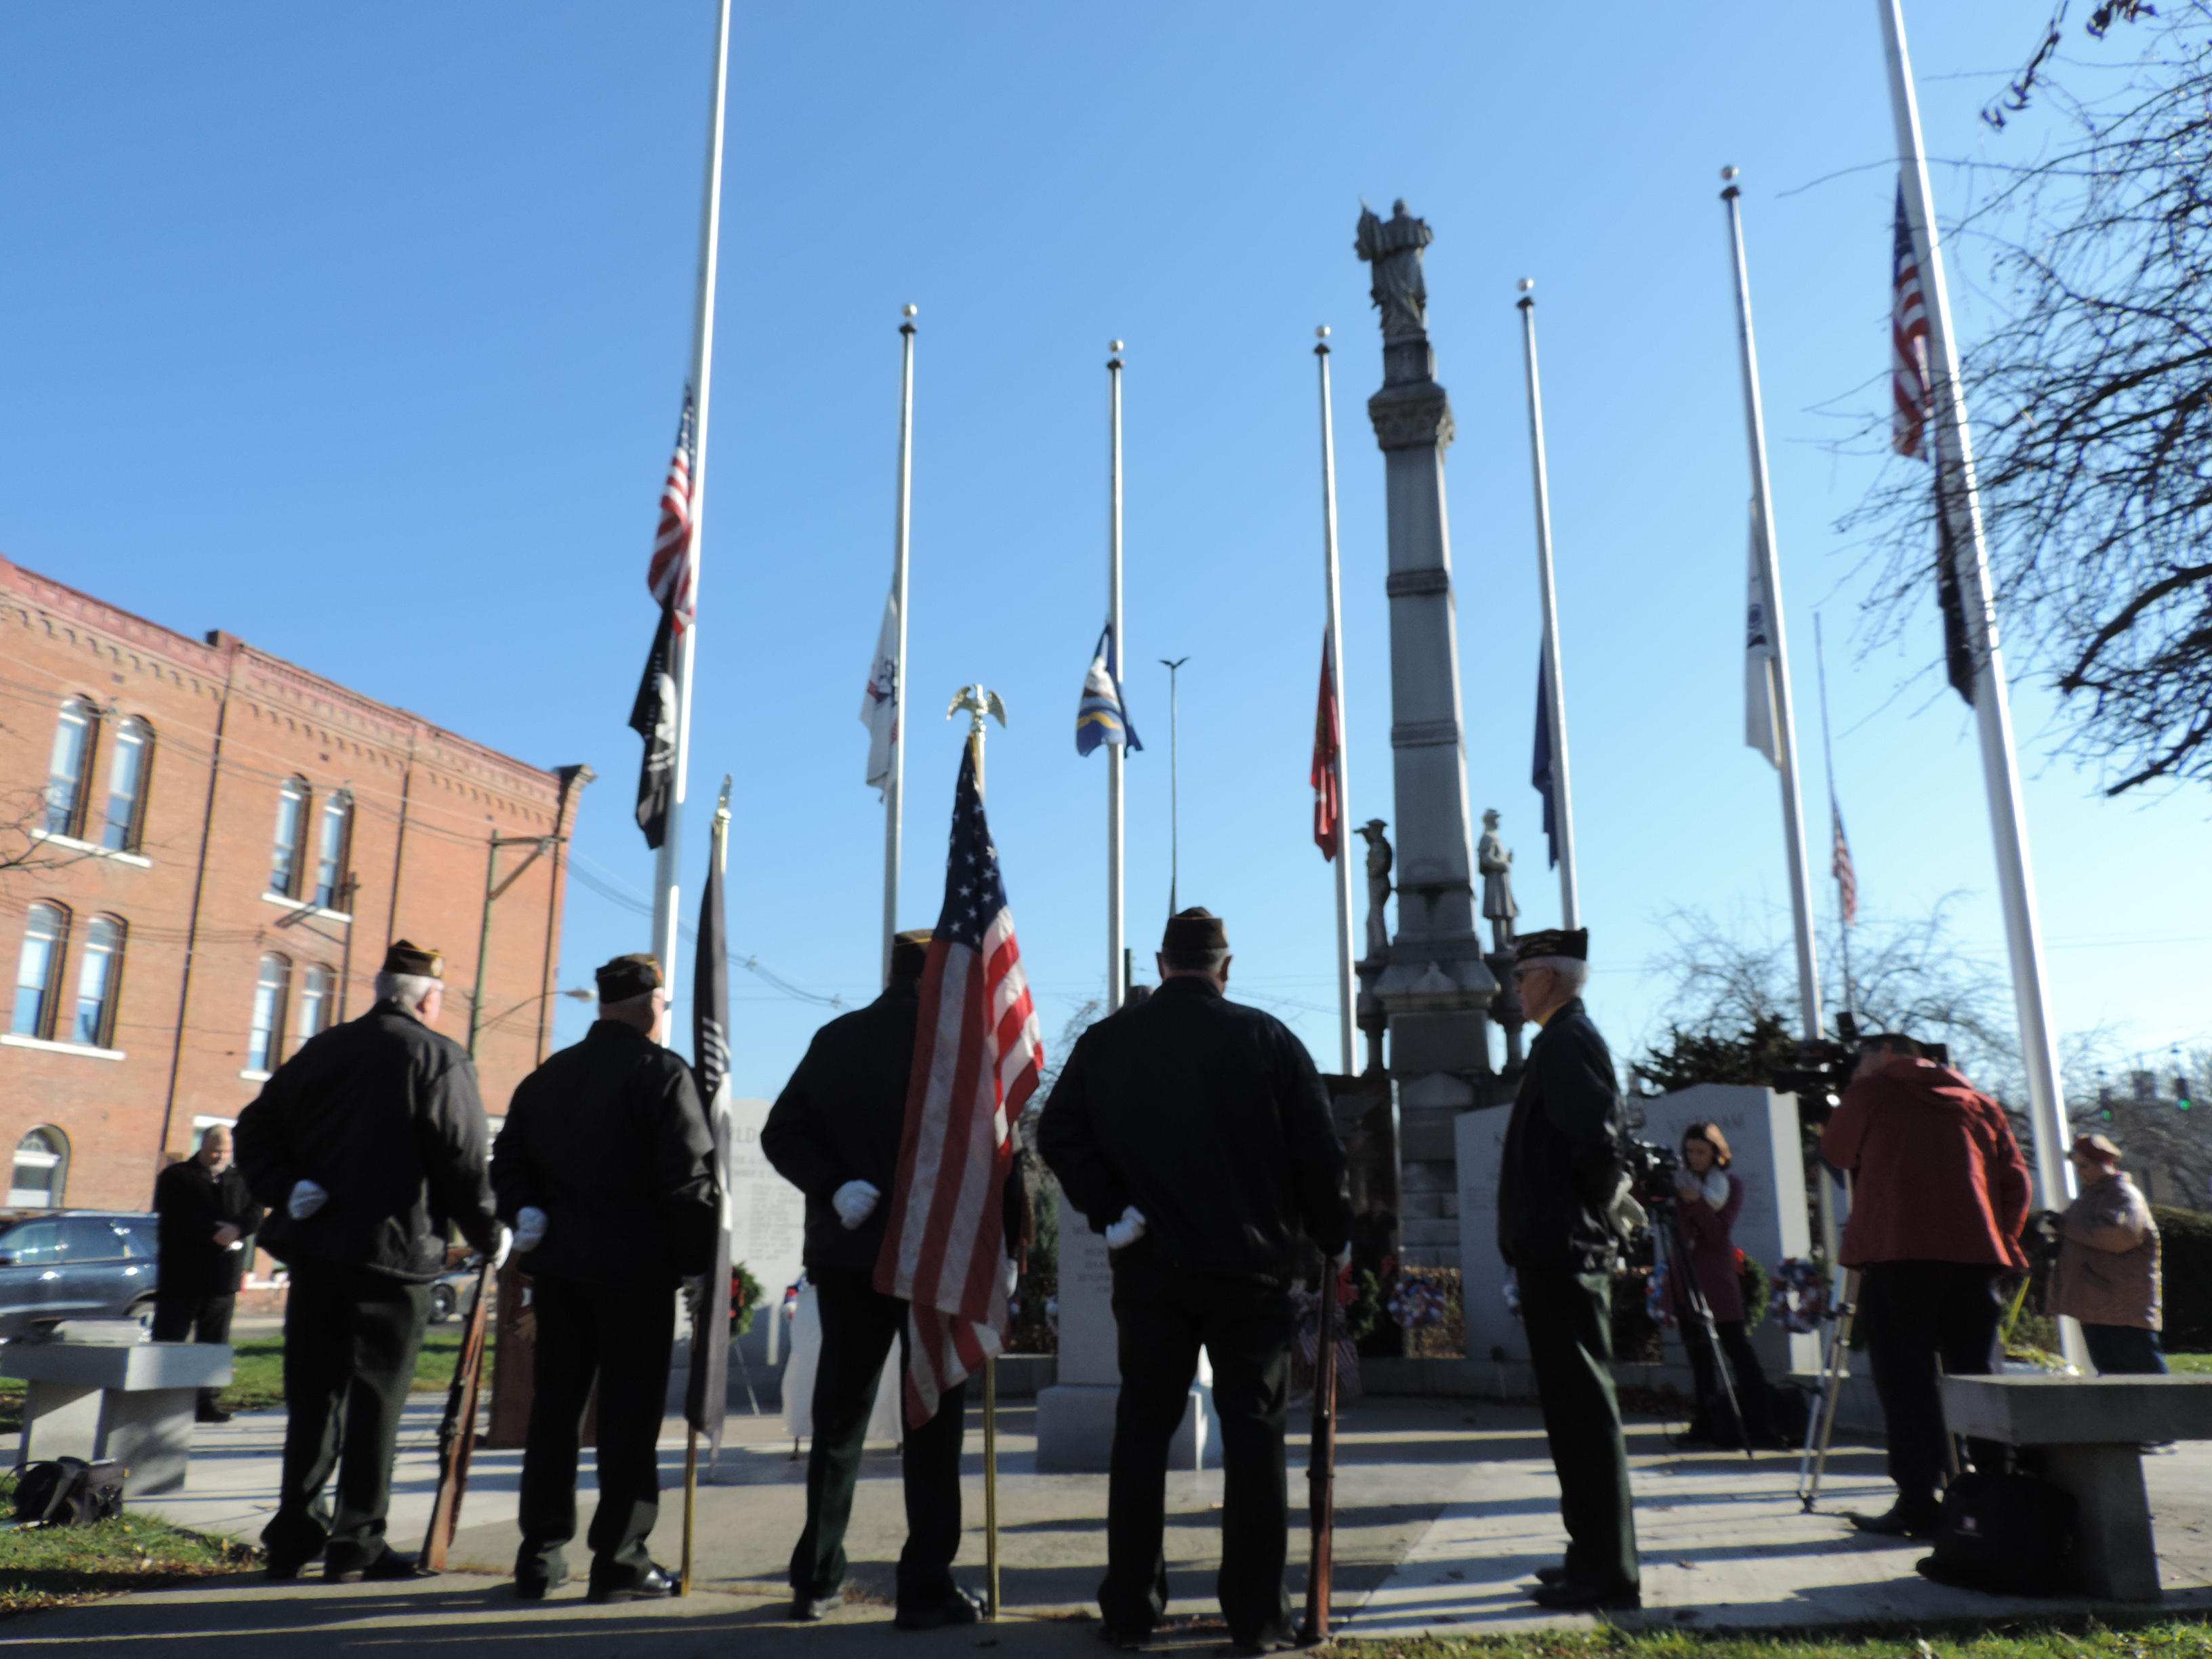 Pearl Harbor survivors and those who served are honored in Owego